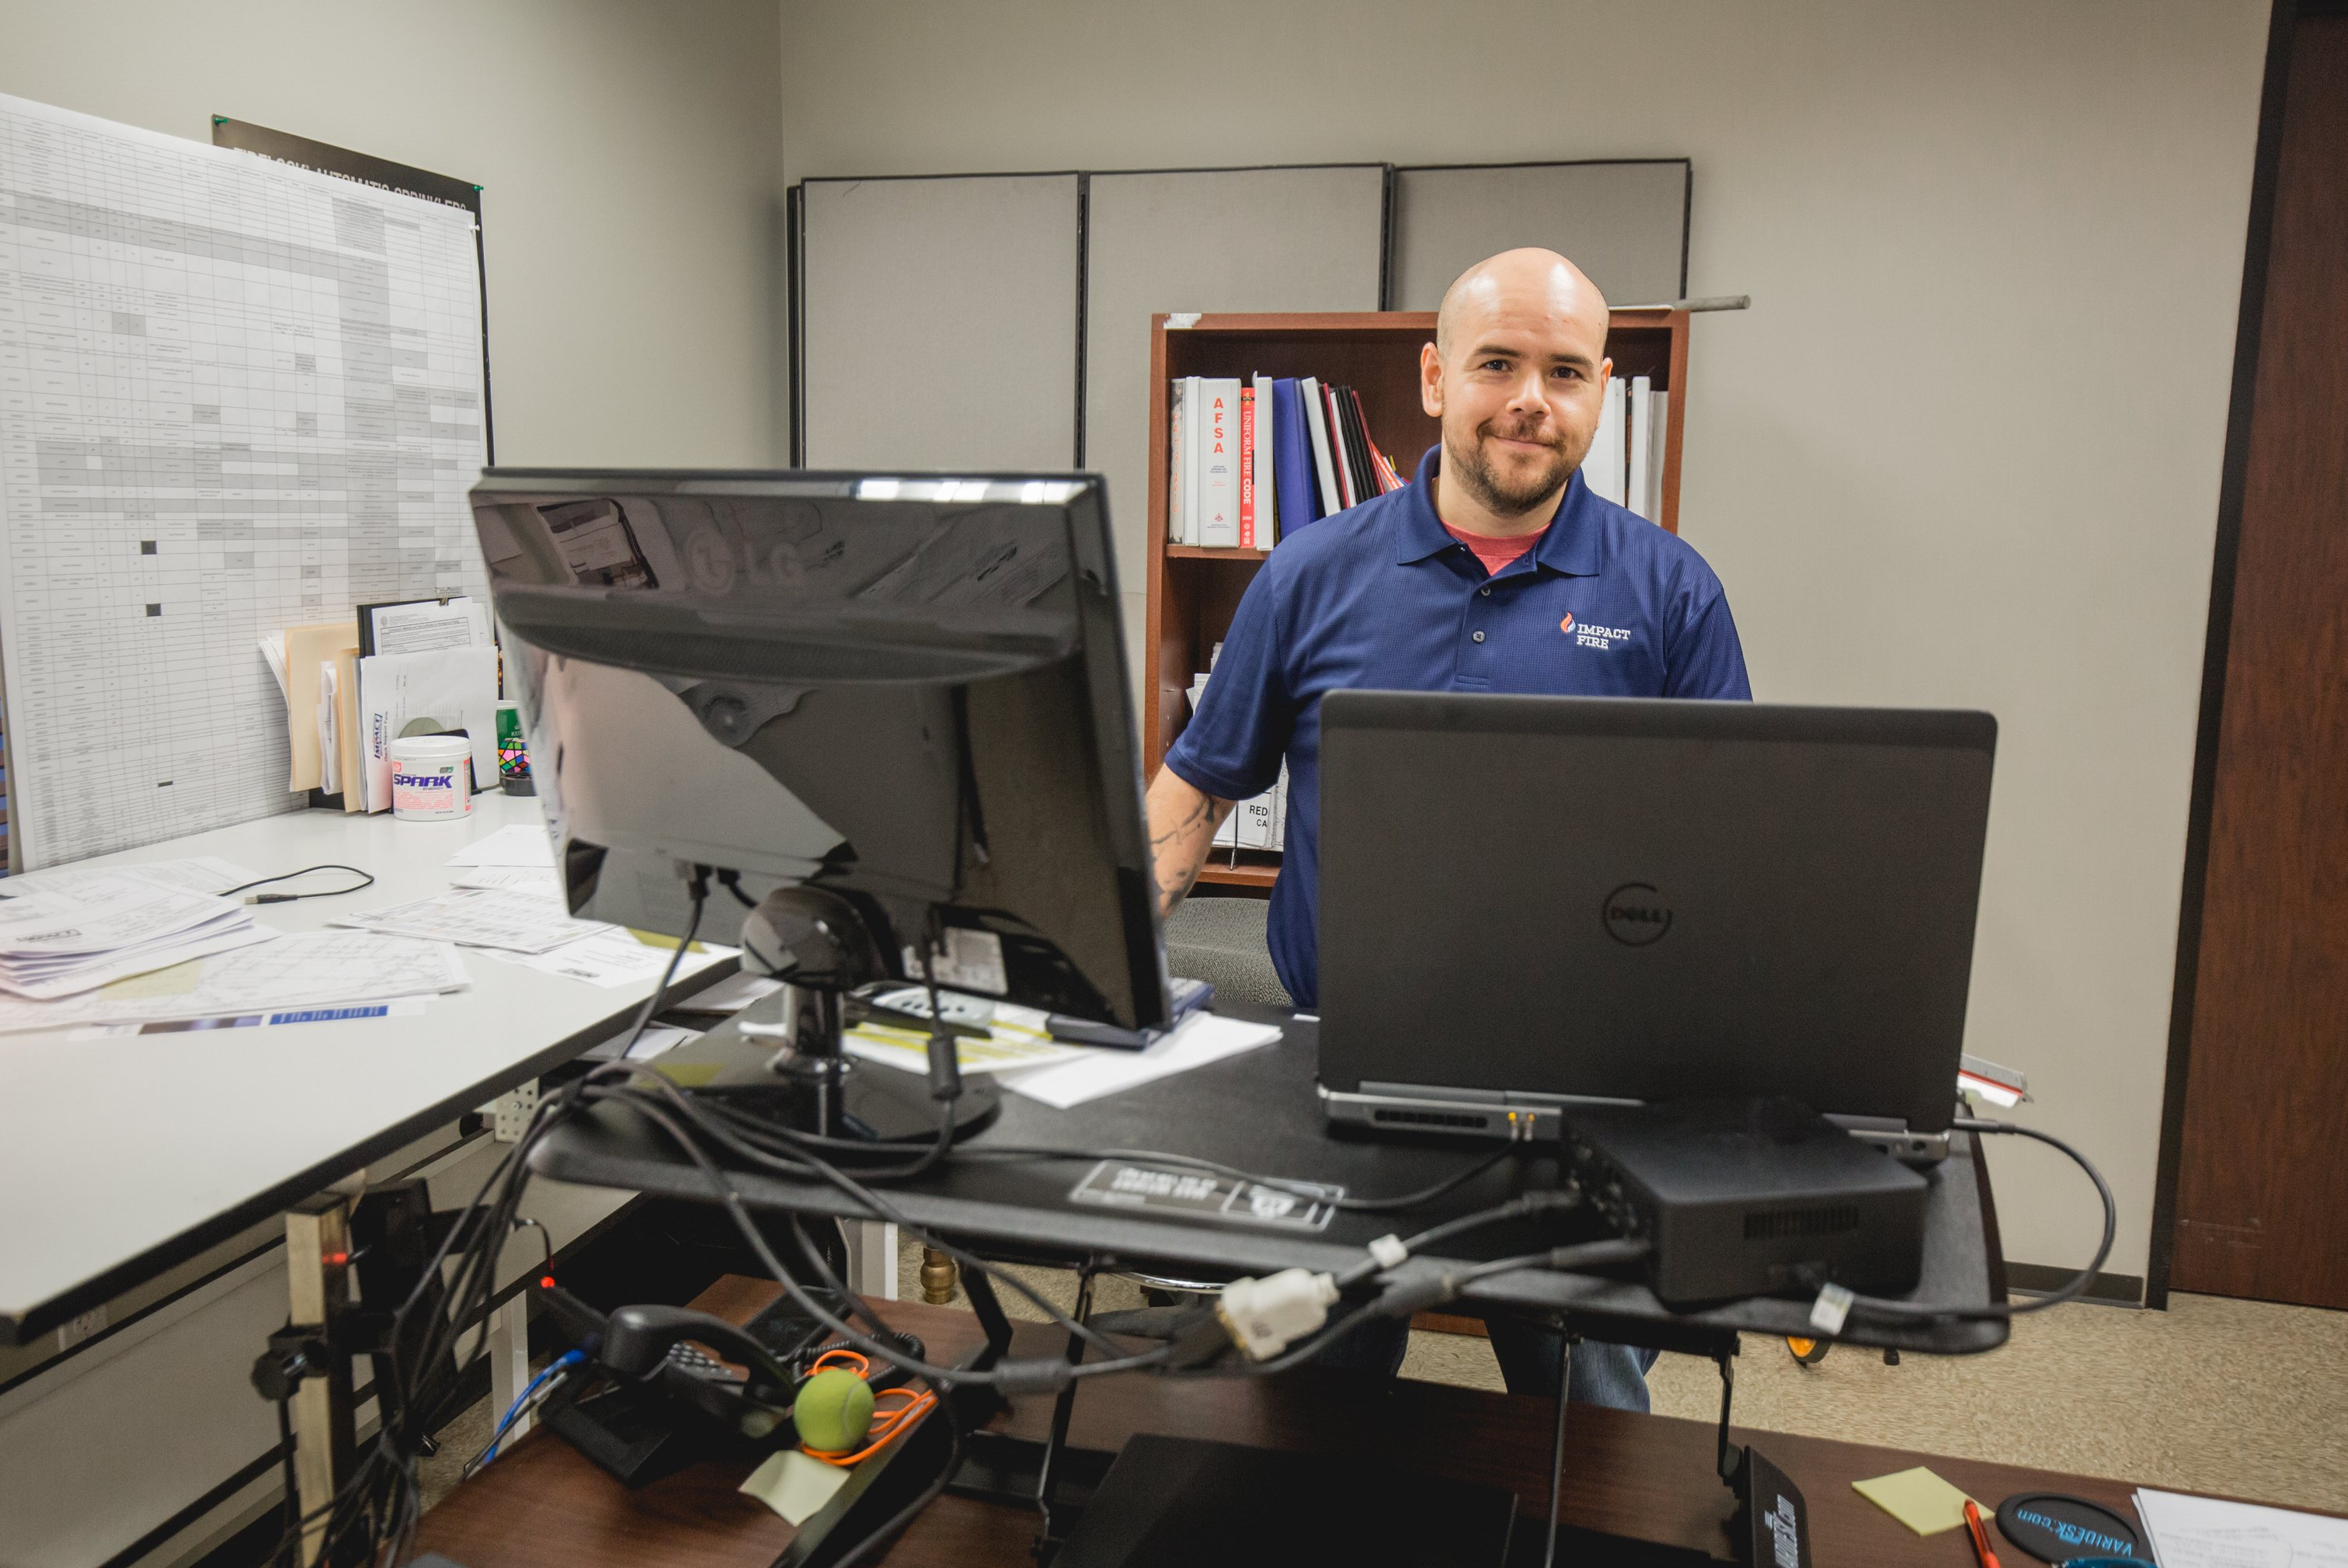 Why I Work at Impact Fire as an Office Manager